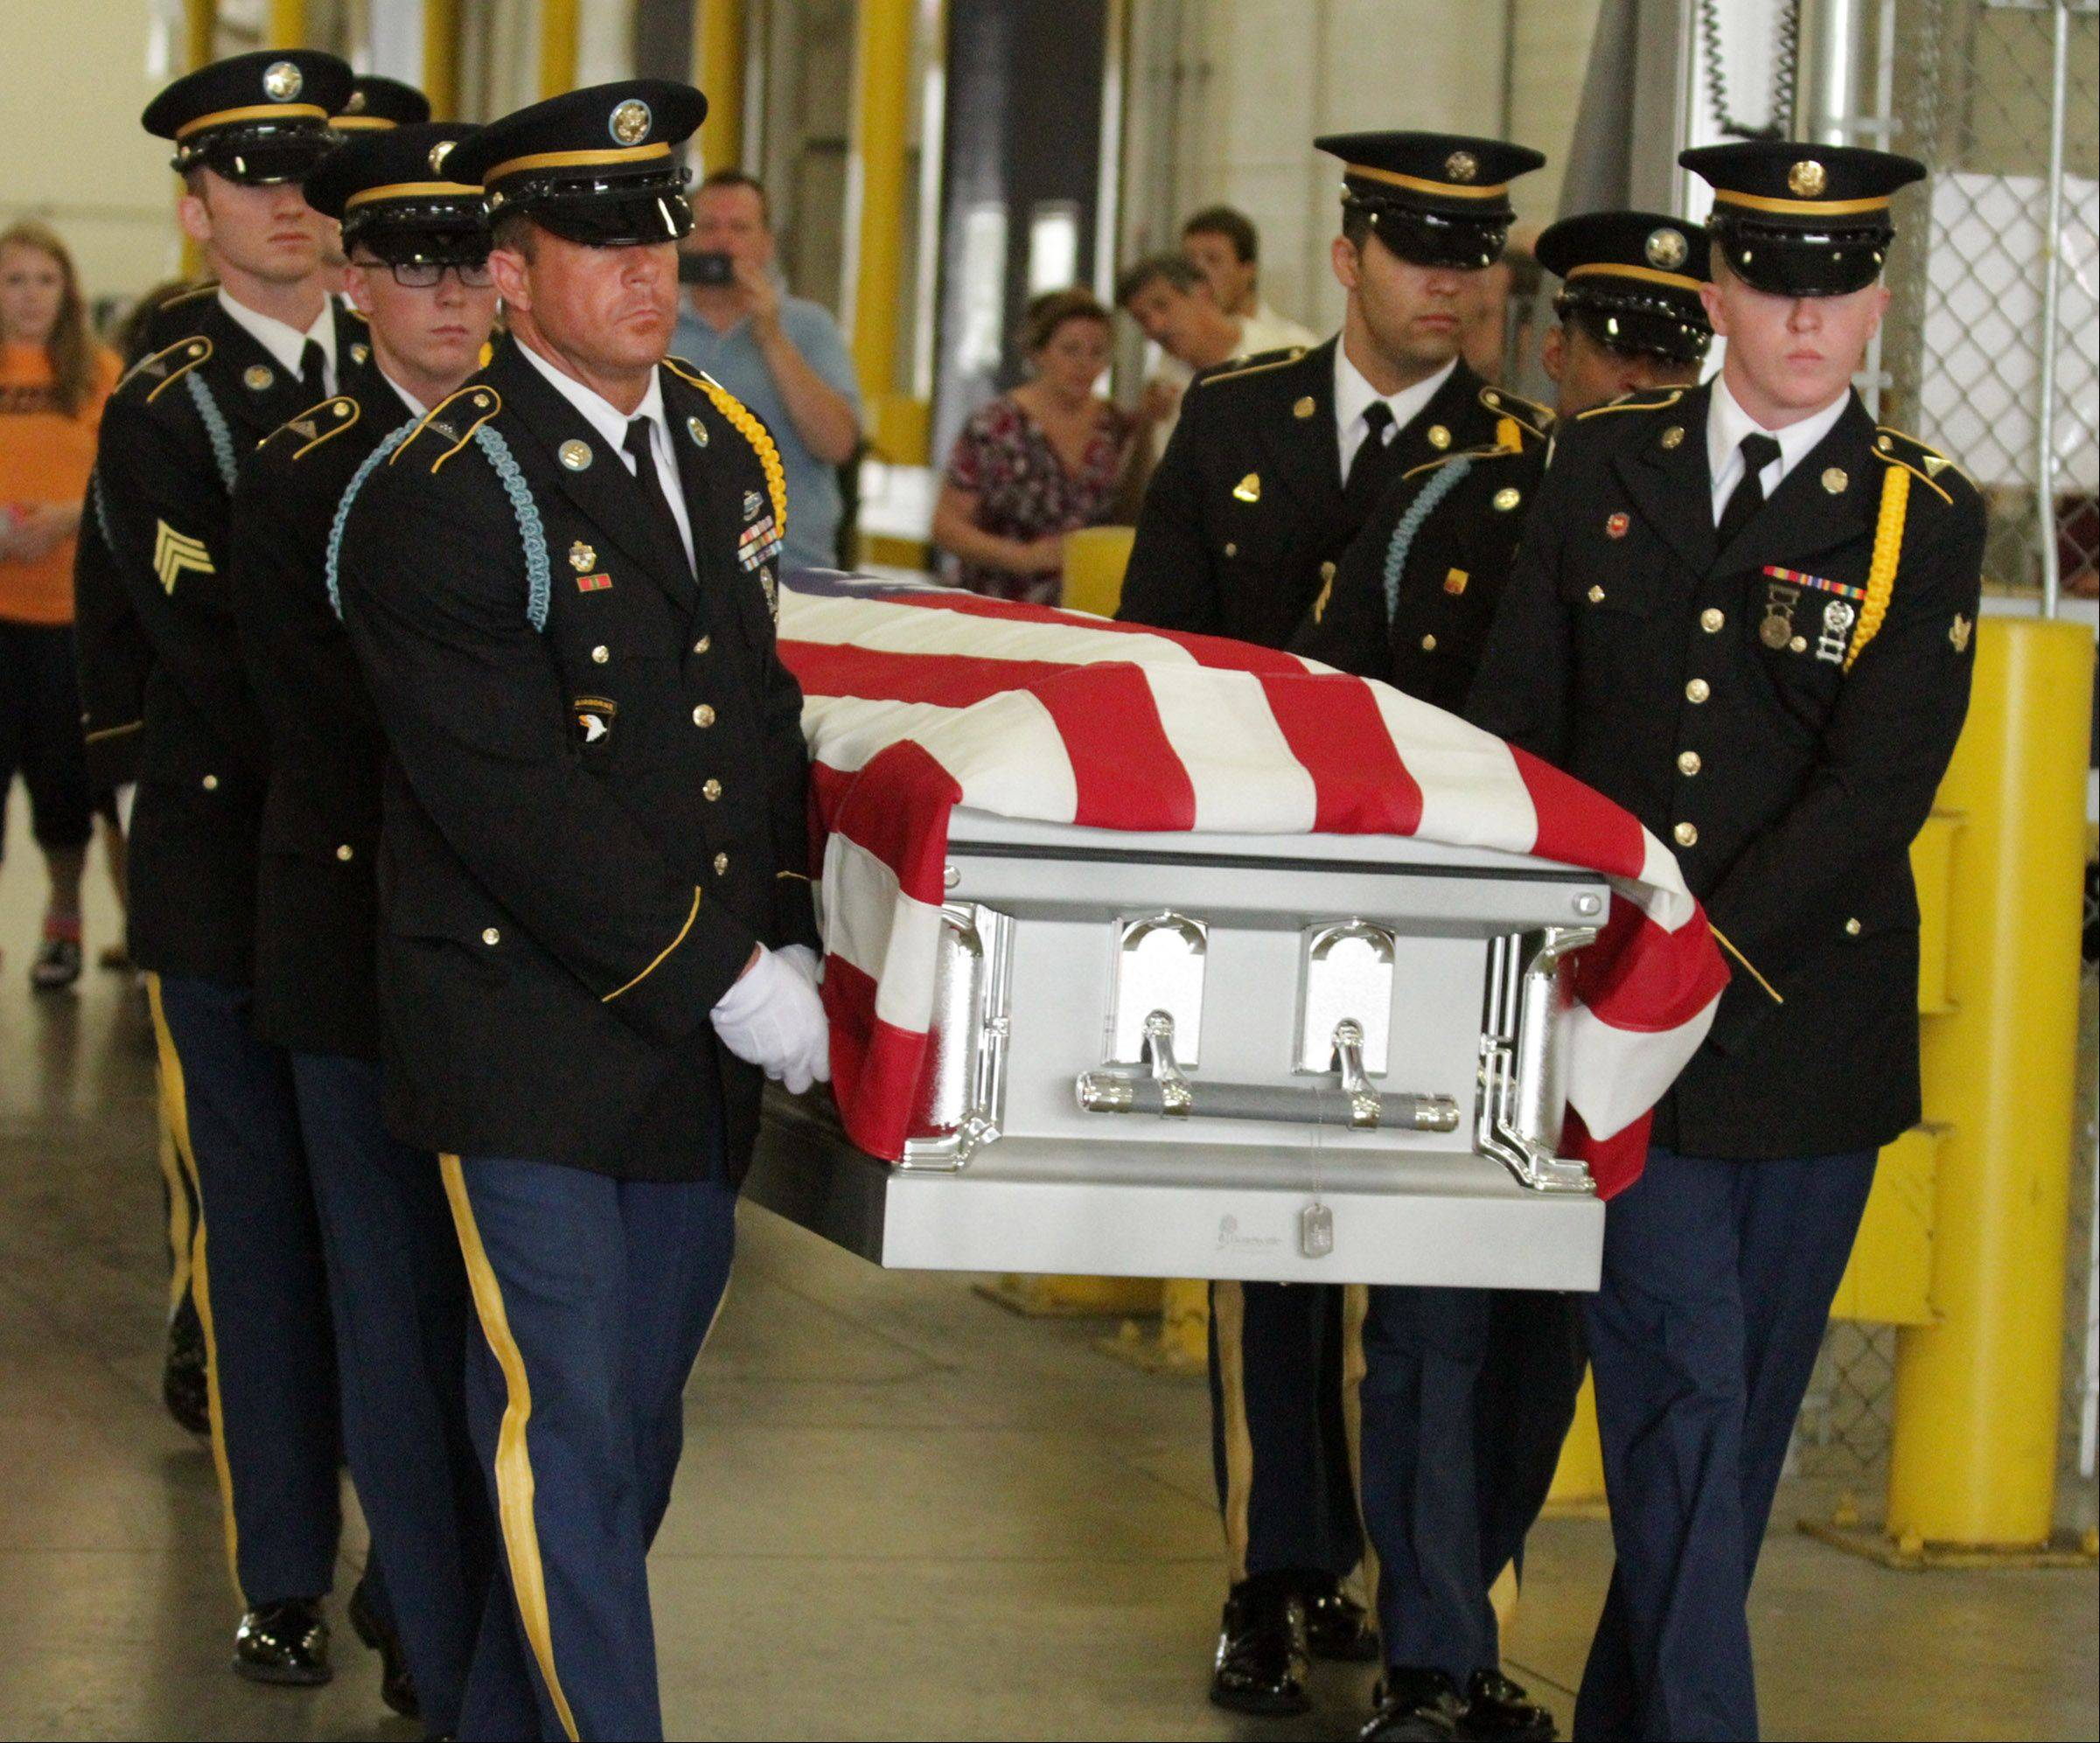 In a silver casket draped in a U.S. flag and carried by an Army honor guard, the remains of Army Cpl. Donald V. MacLean arrive Wednesday at O'Hare International Airport. New testing identified the remains 63 years after the 17-year-old soldier was killed during the Battle of Chosin Reservoir in Korea.